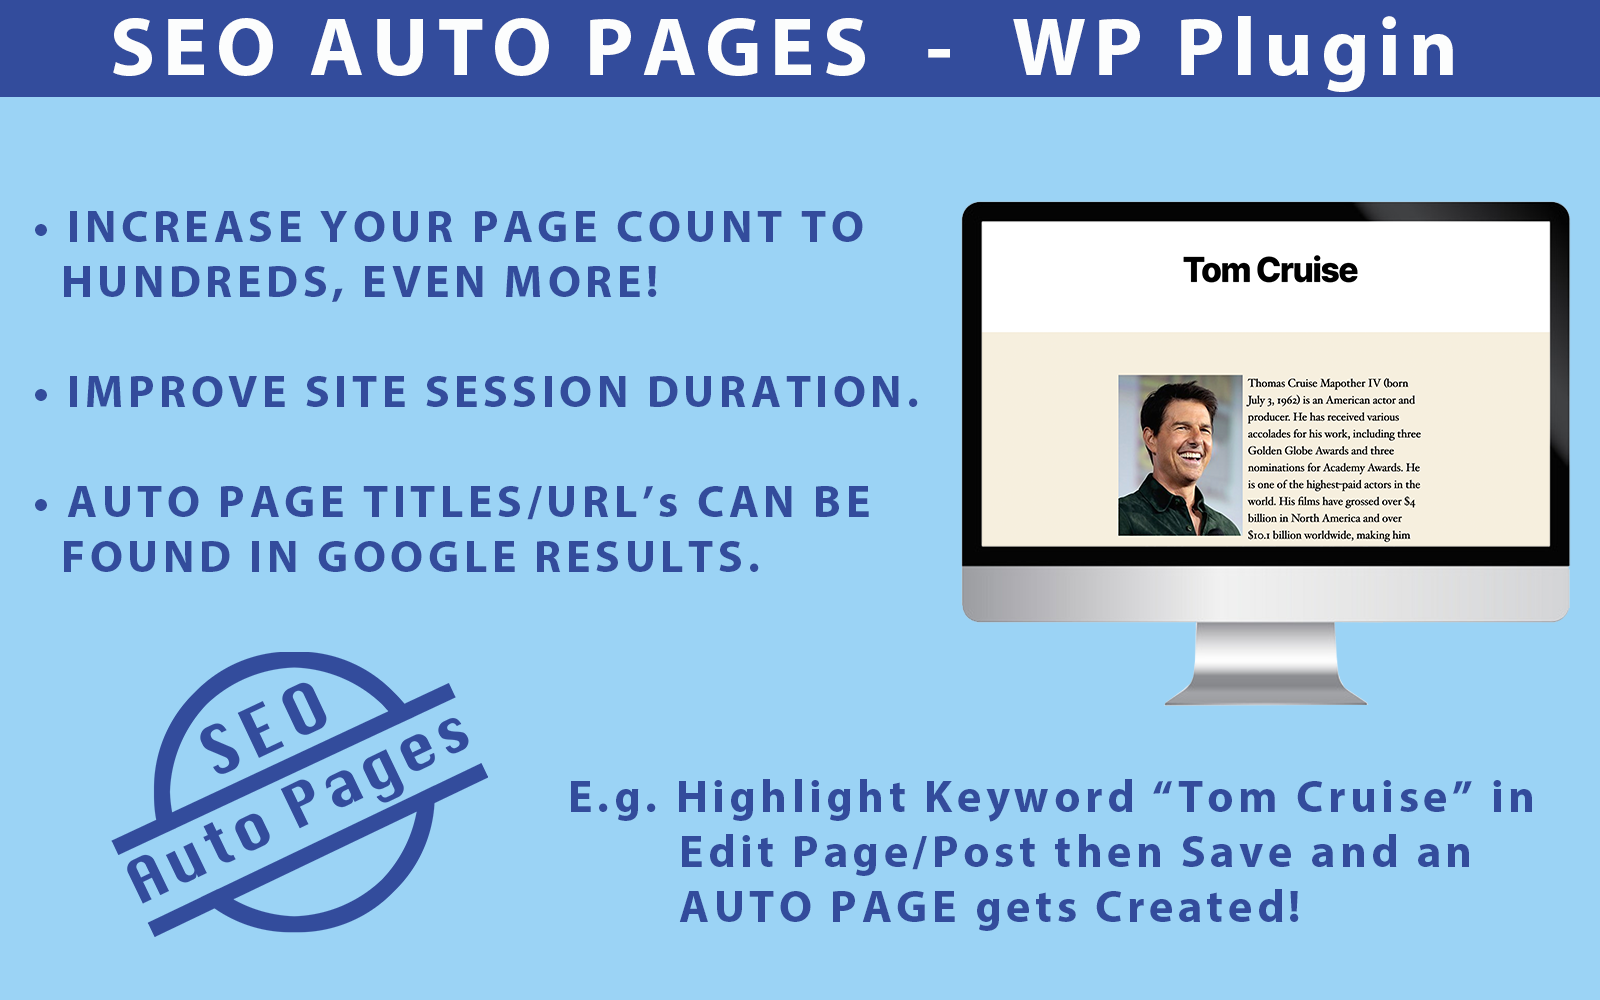 SEO Auto Pages - Wordpress-plug-in